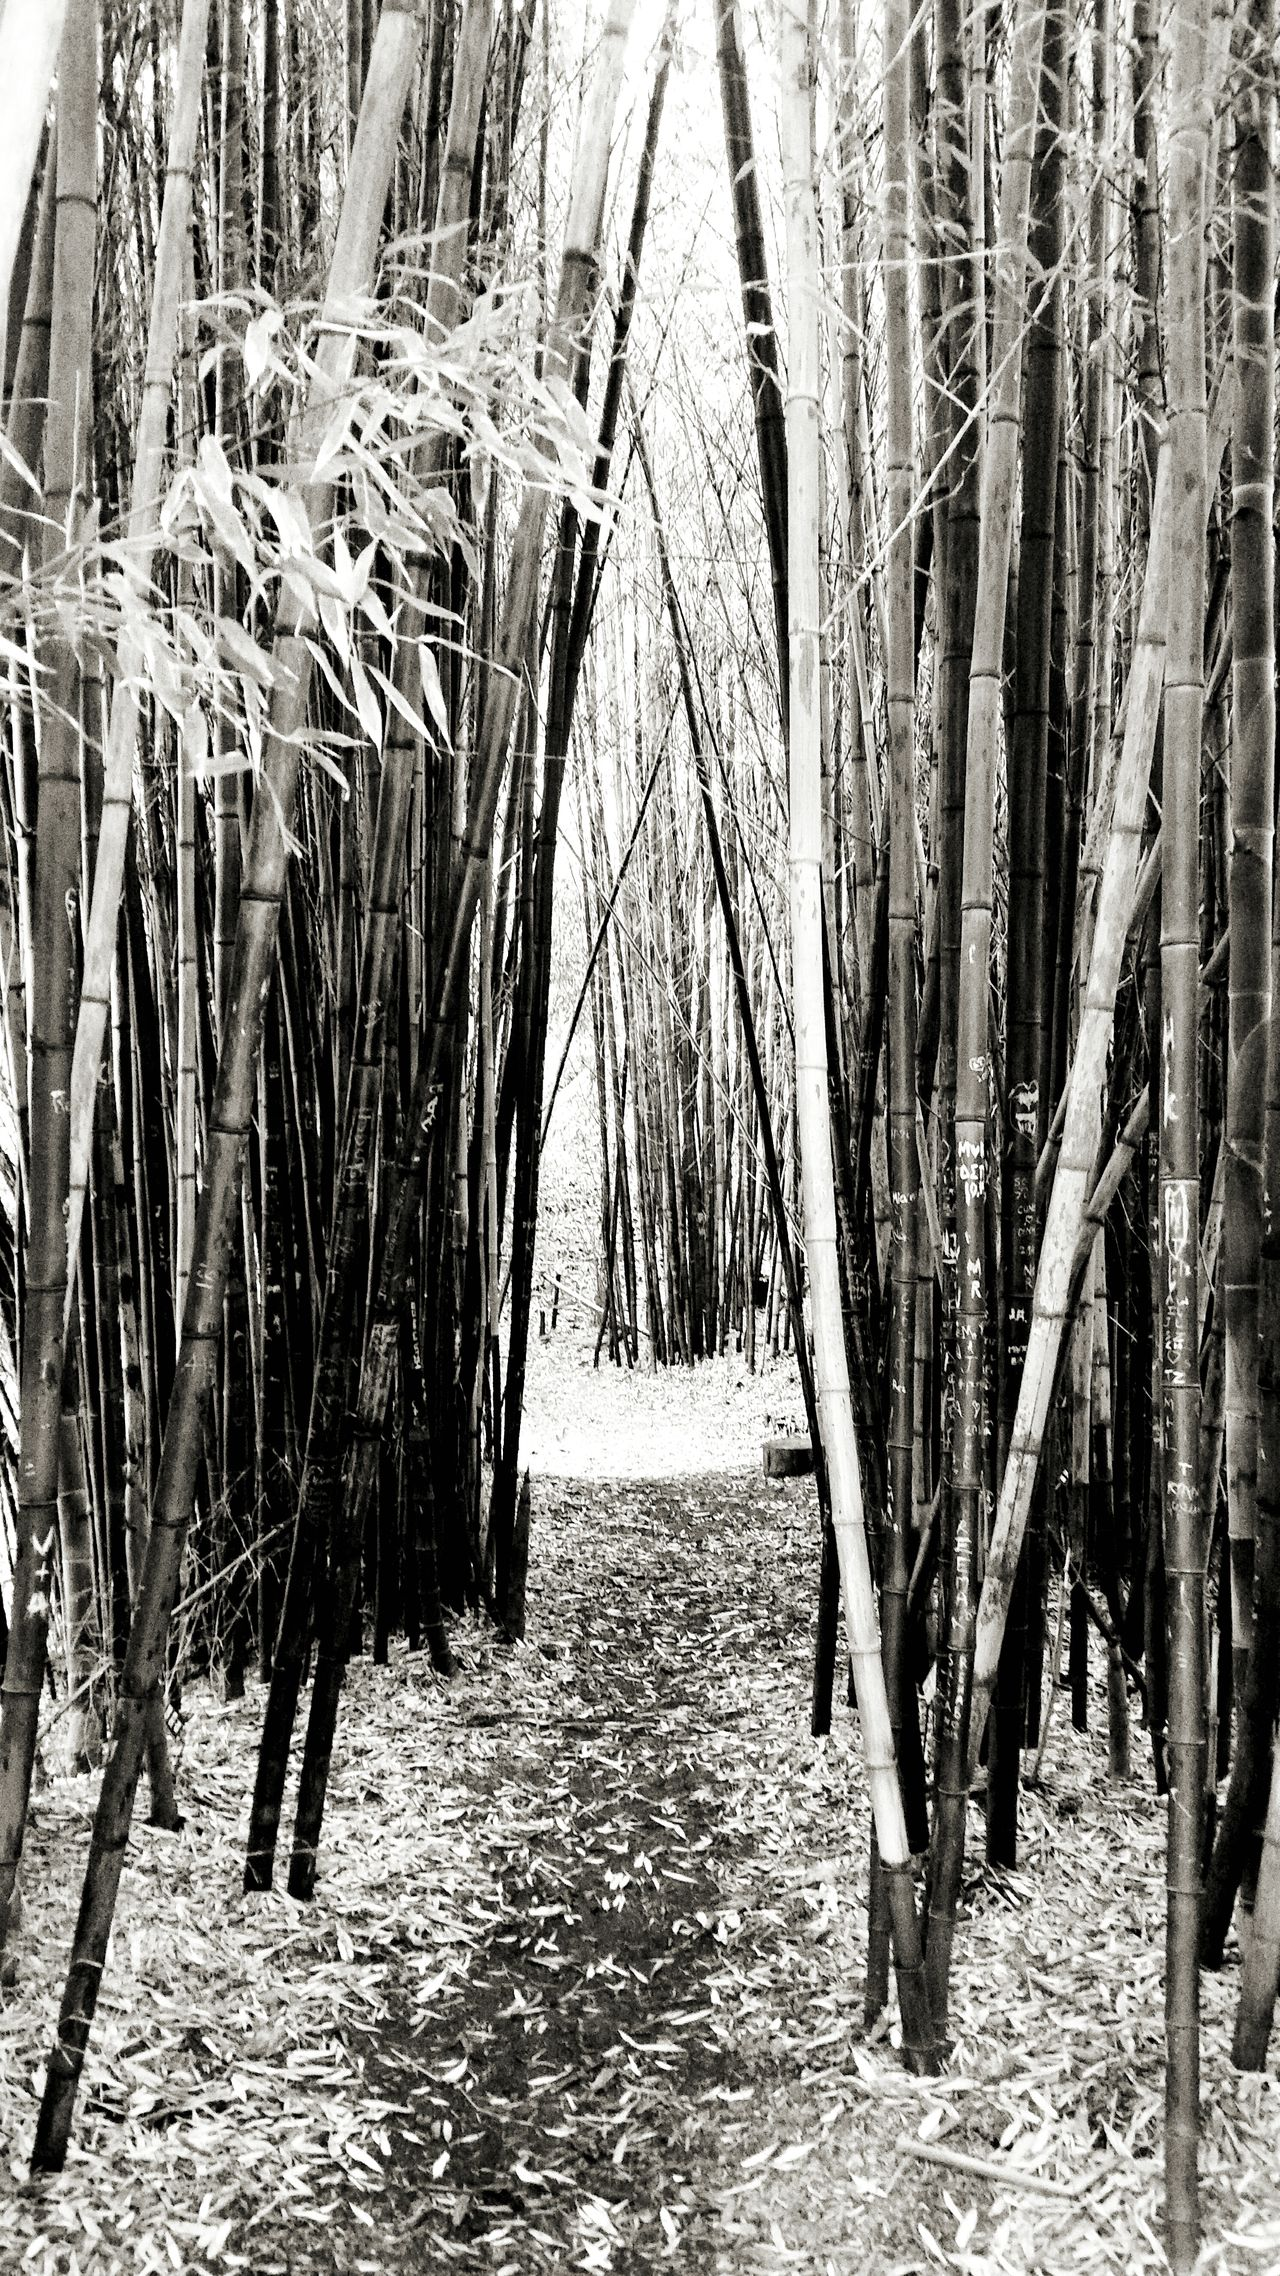 """Looking at pathway between bamboo in a """"forest"""" in the San Francisco Botanical Gardens. Where does it lead to? Similarly in life pathways open up. Shall we explore them or stay on course? Sanfrancisco Bamboo Botanical Gardens Chosen Paths Nature Photography"""